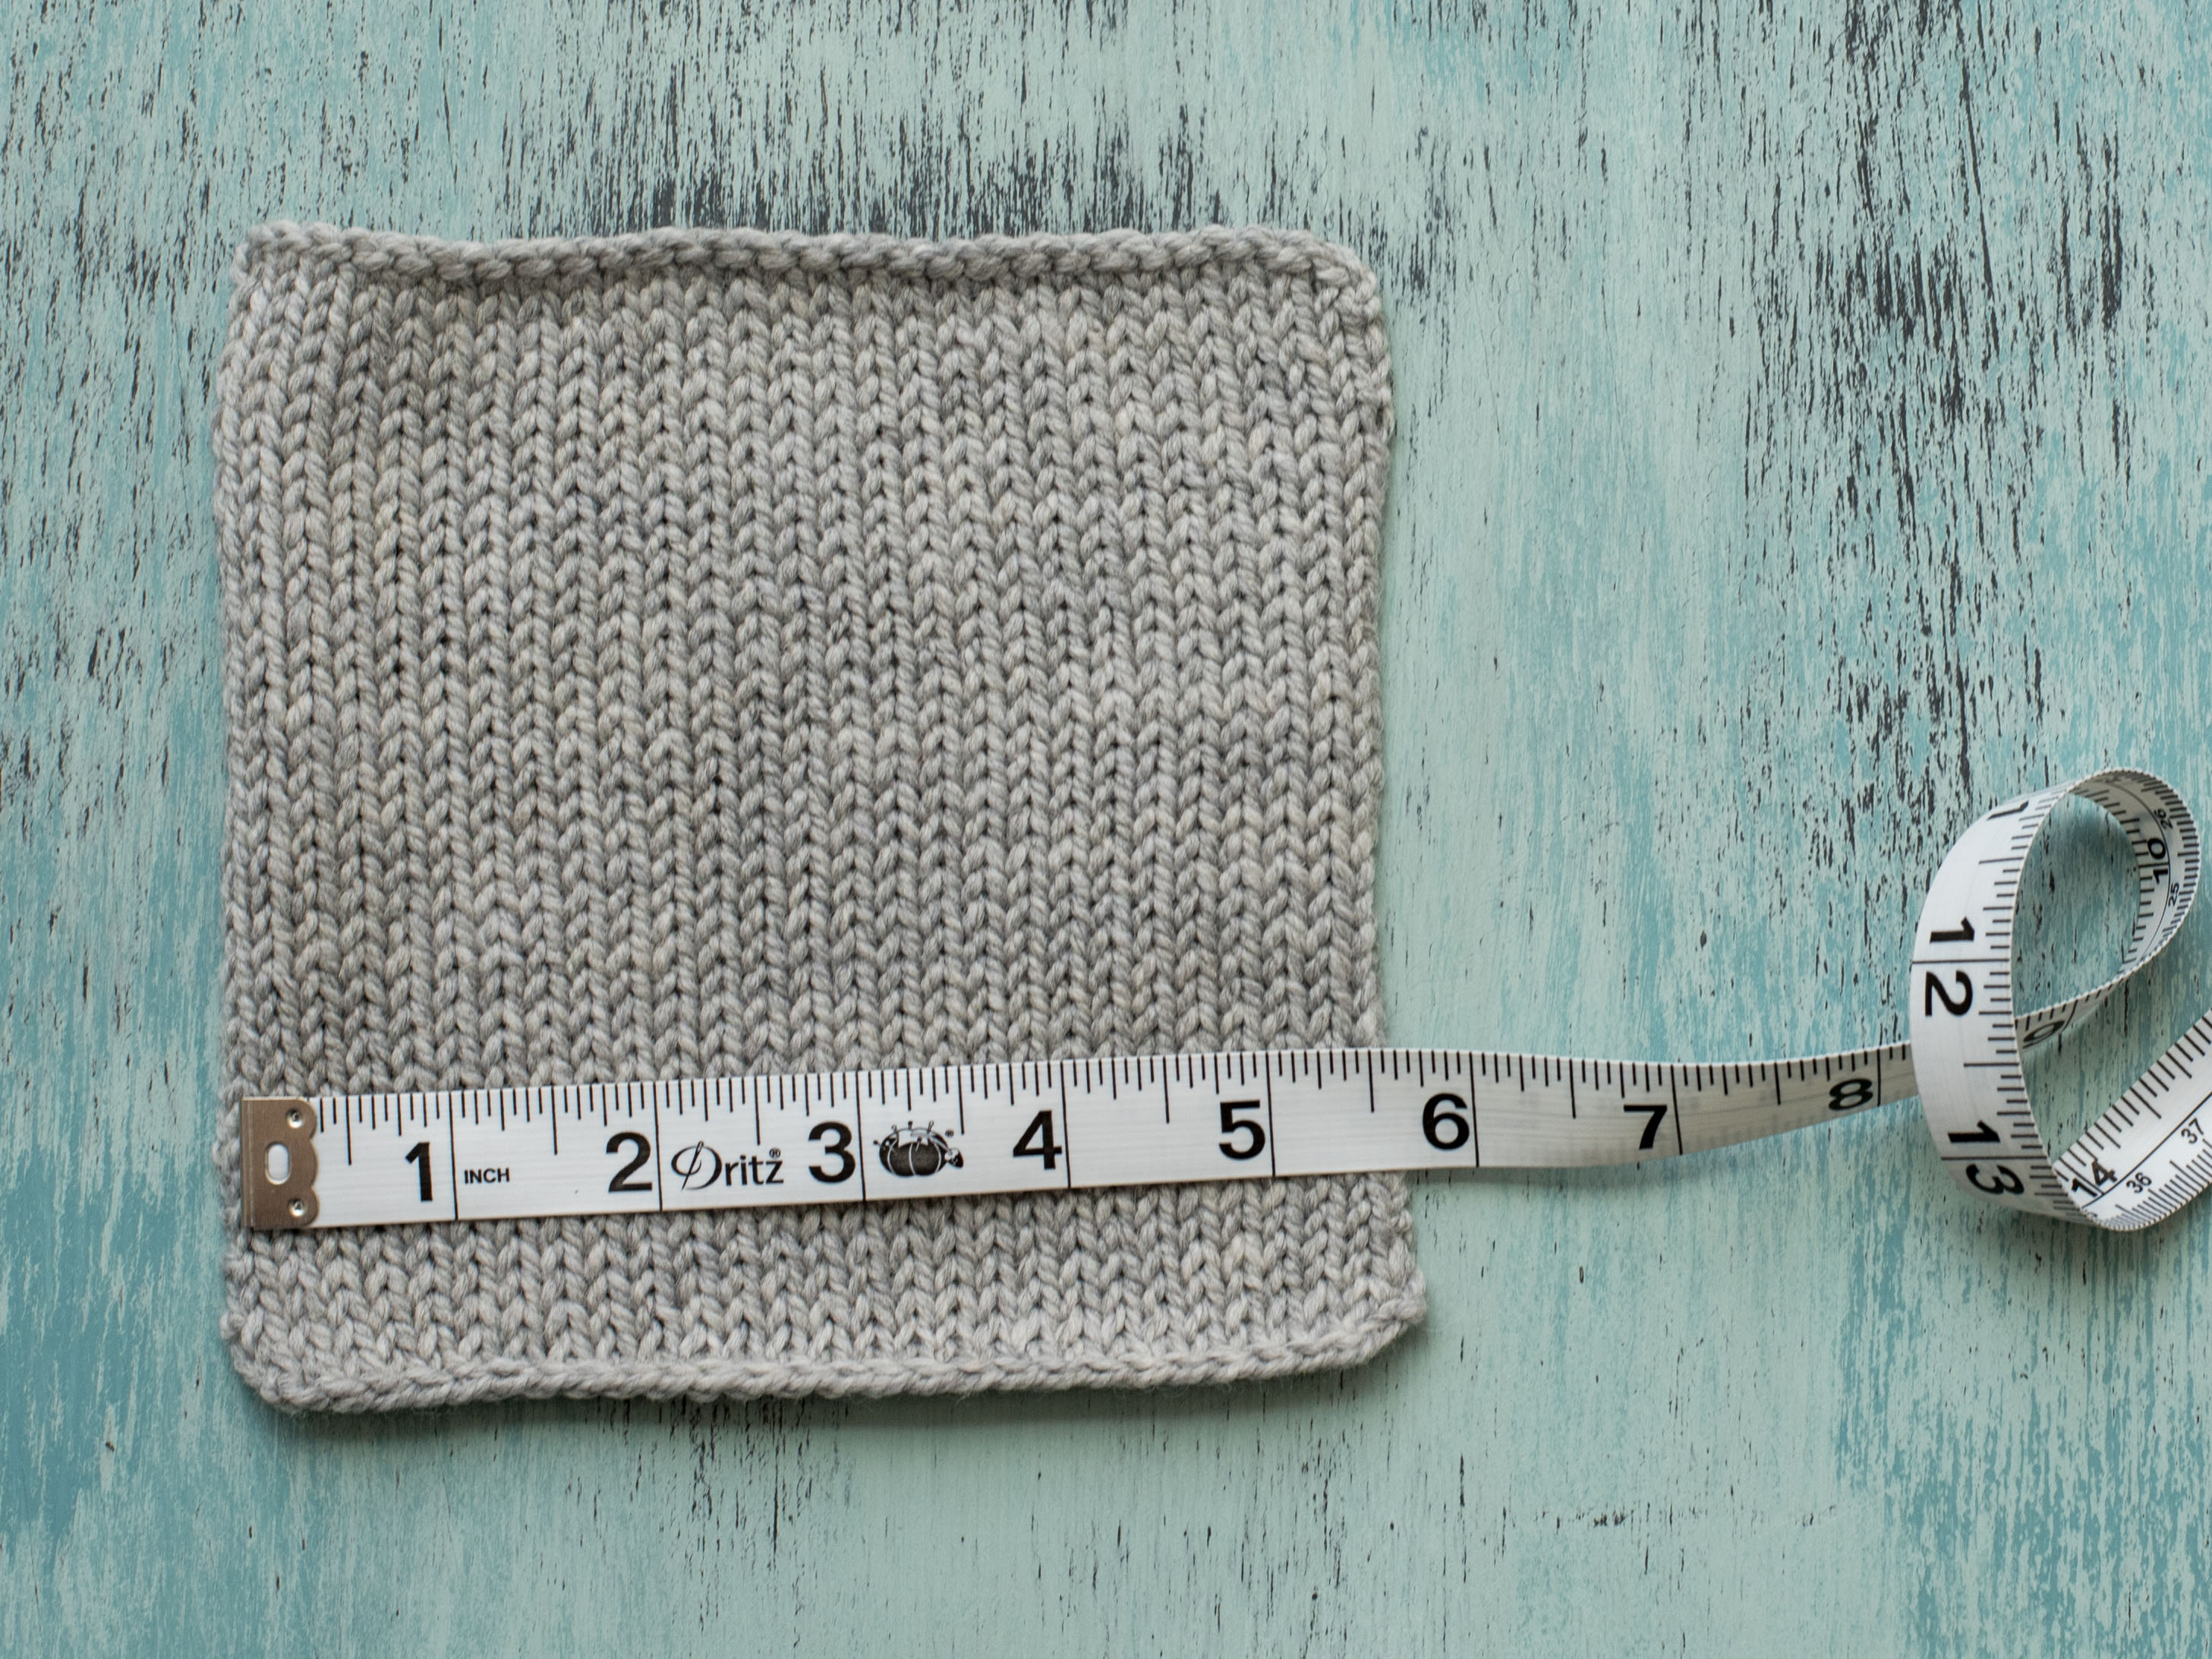 Measuring Stitch Gauge on Knit Gray Swatch